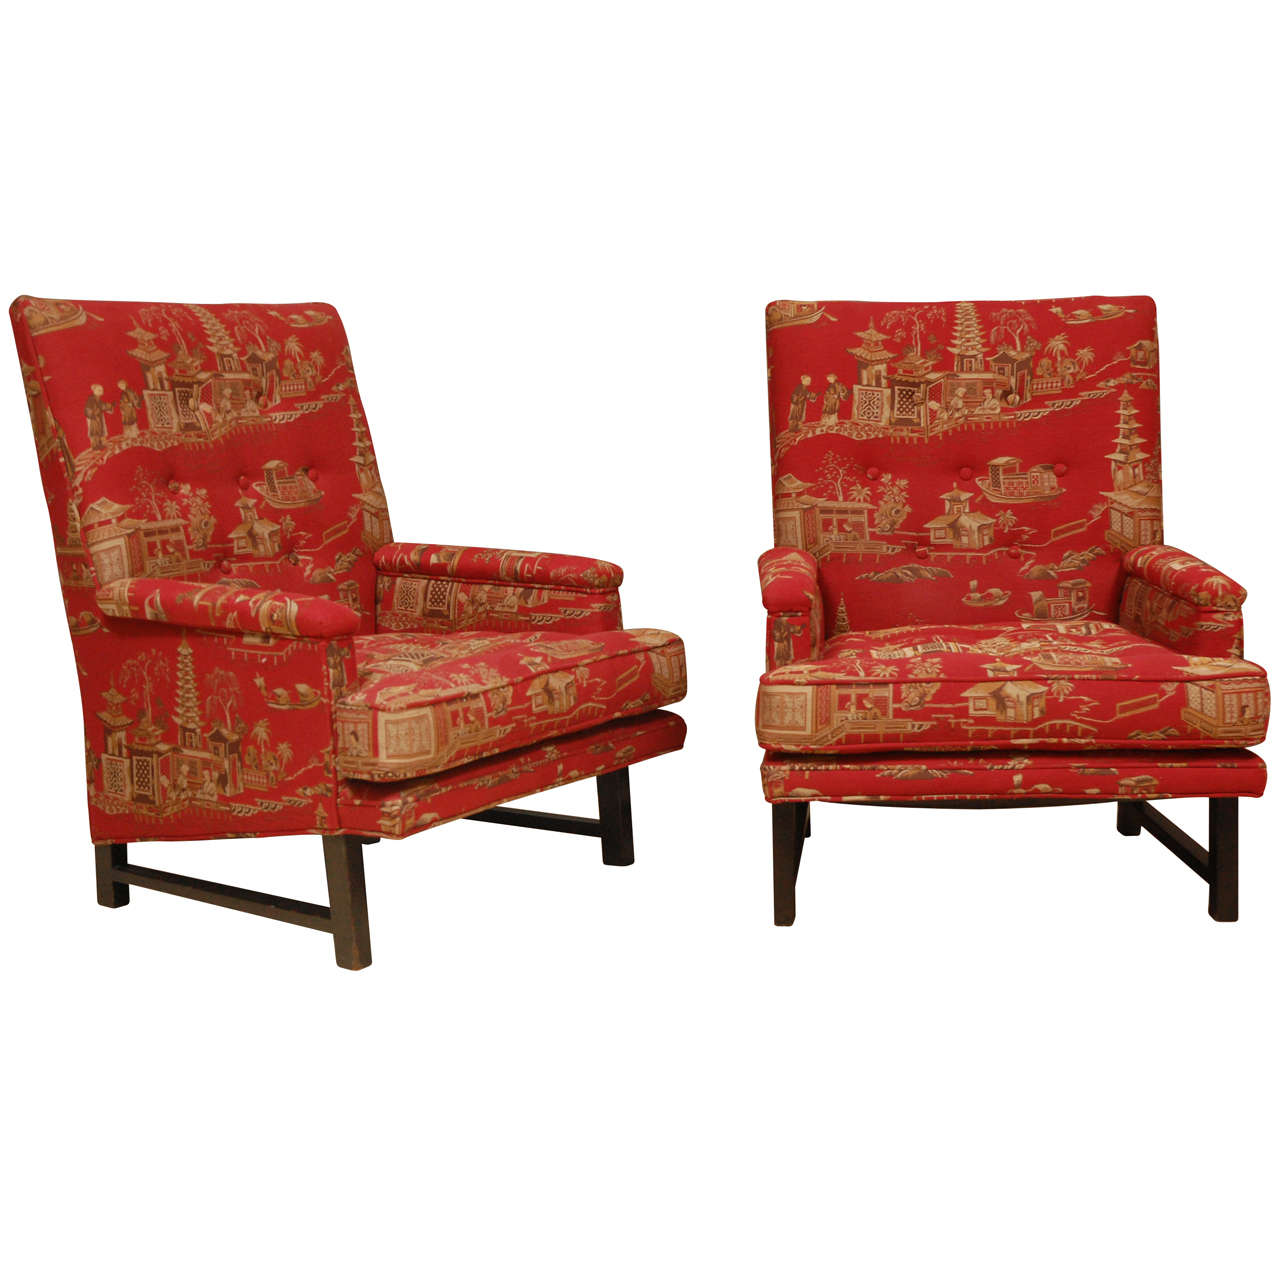 Rare highback version of dunbar arm chairs by edward wormley in original fabric at 1stdibs - Edward wormley chairs ...